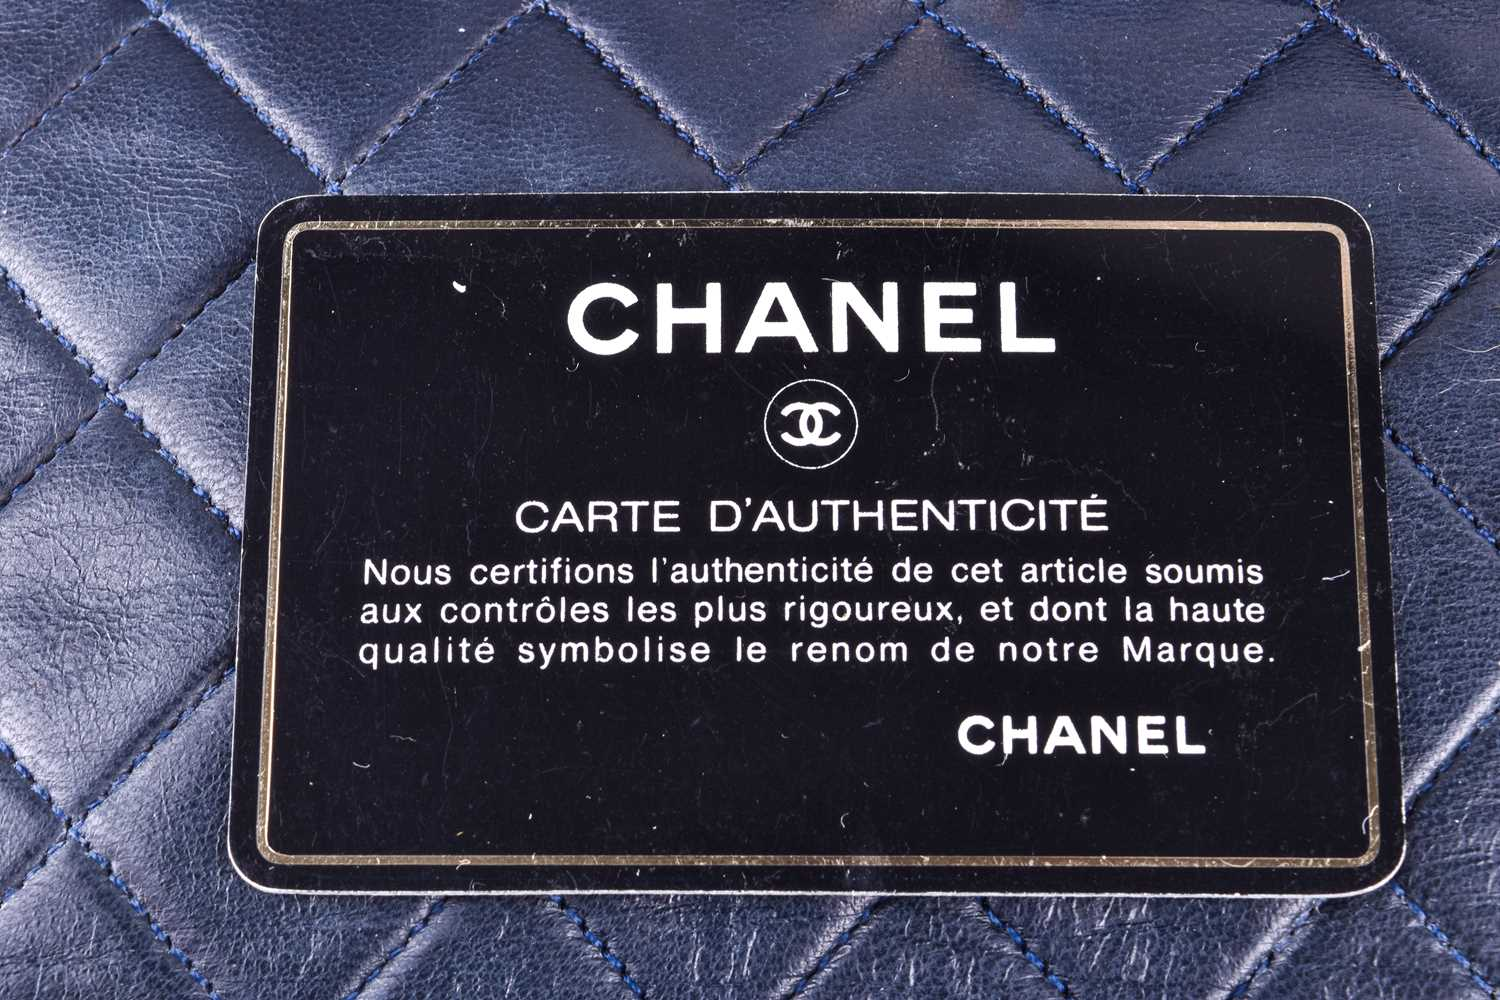 Chanel. A classic quilted leather handbag, of tapered square design, with gold tone CC logo clasp, - Image 7 of 26